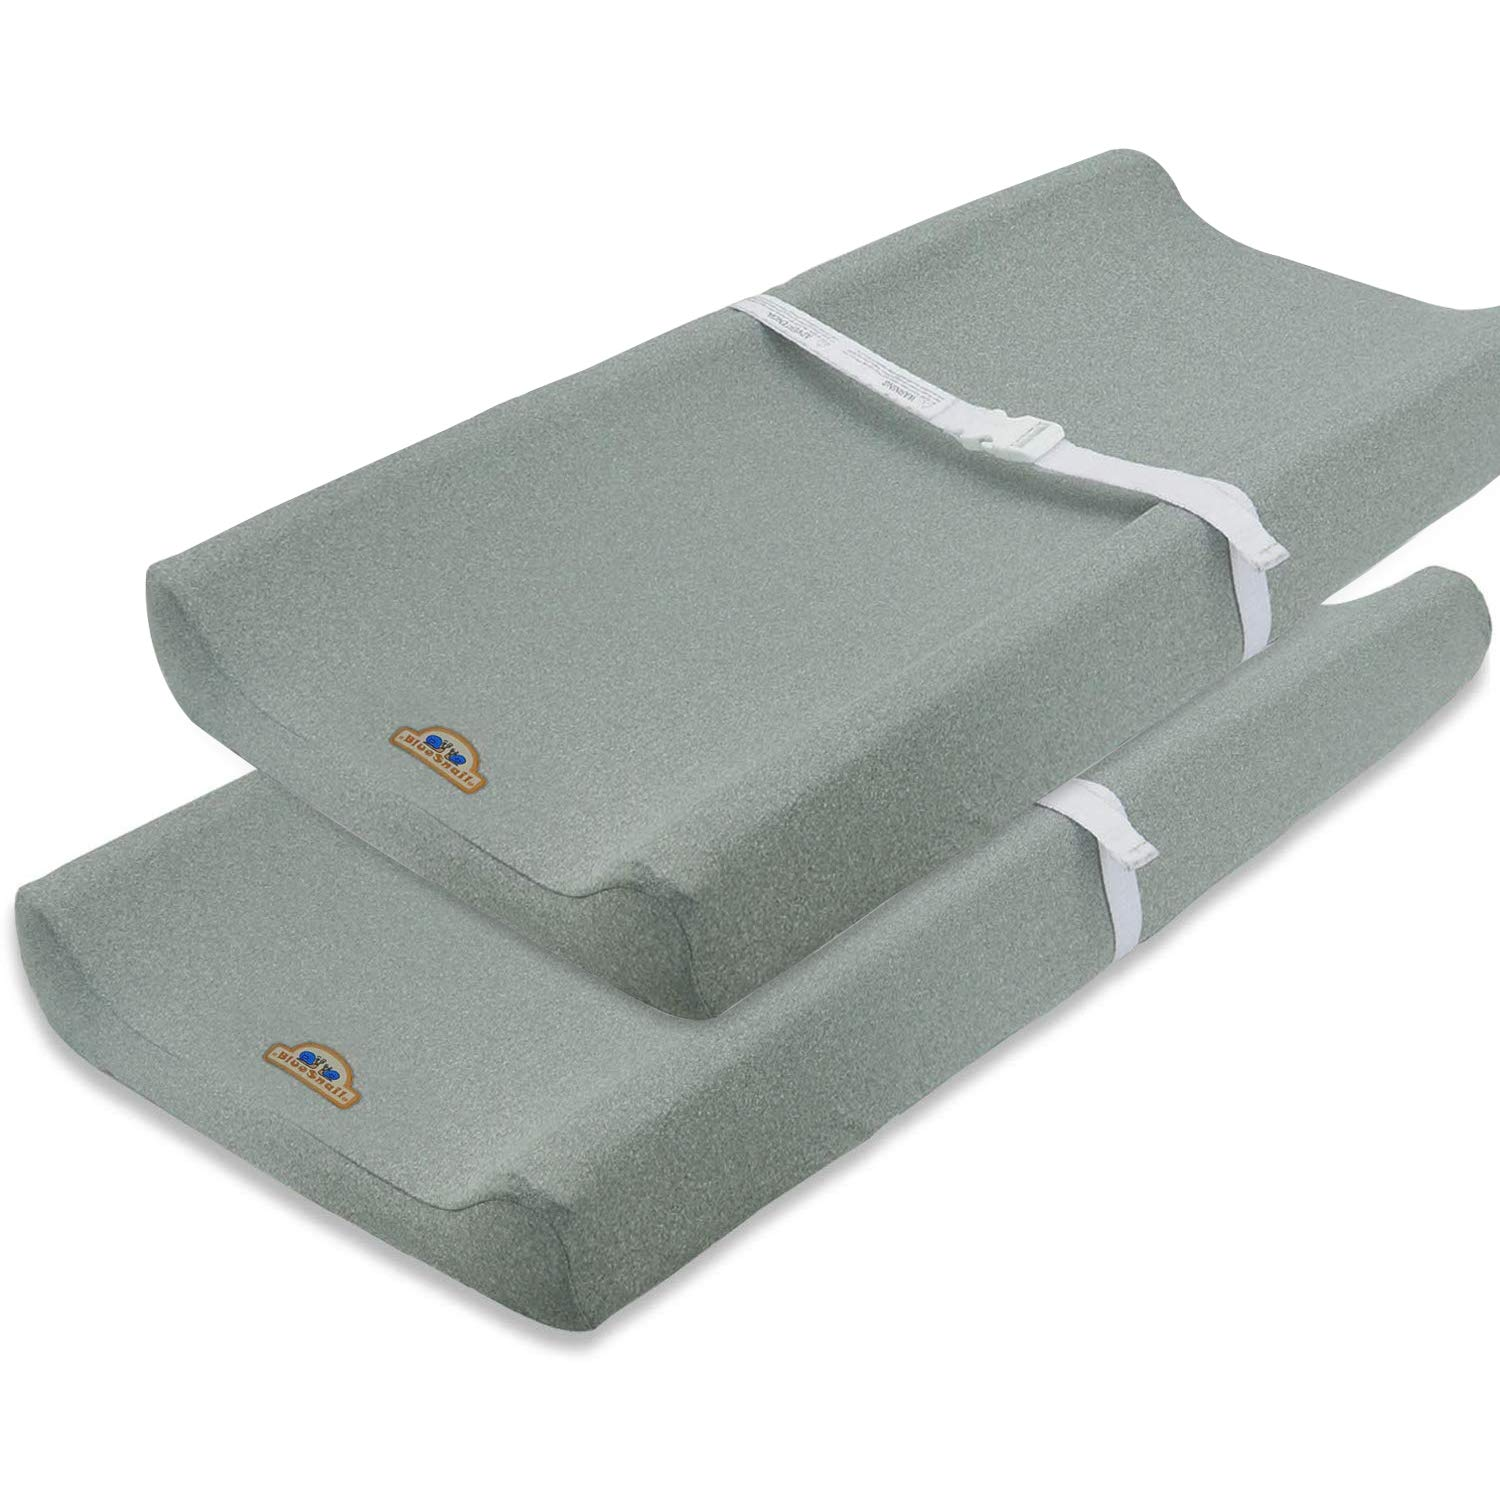 Super Soft and Stretchy Changing Pad Cover 2pk by BlueSnail